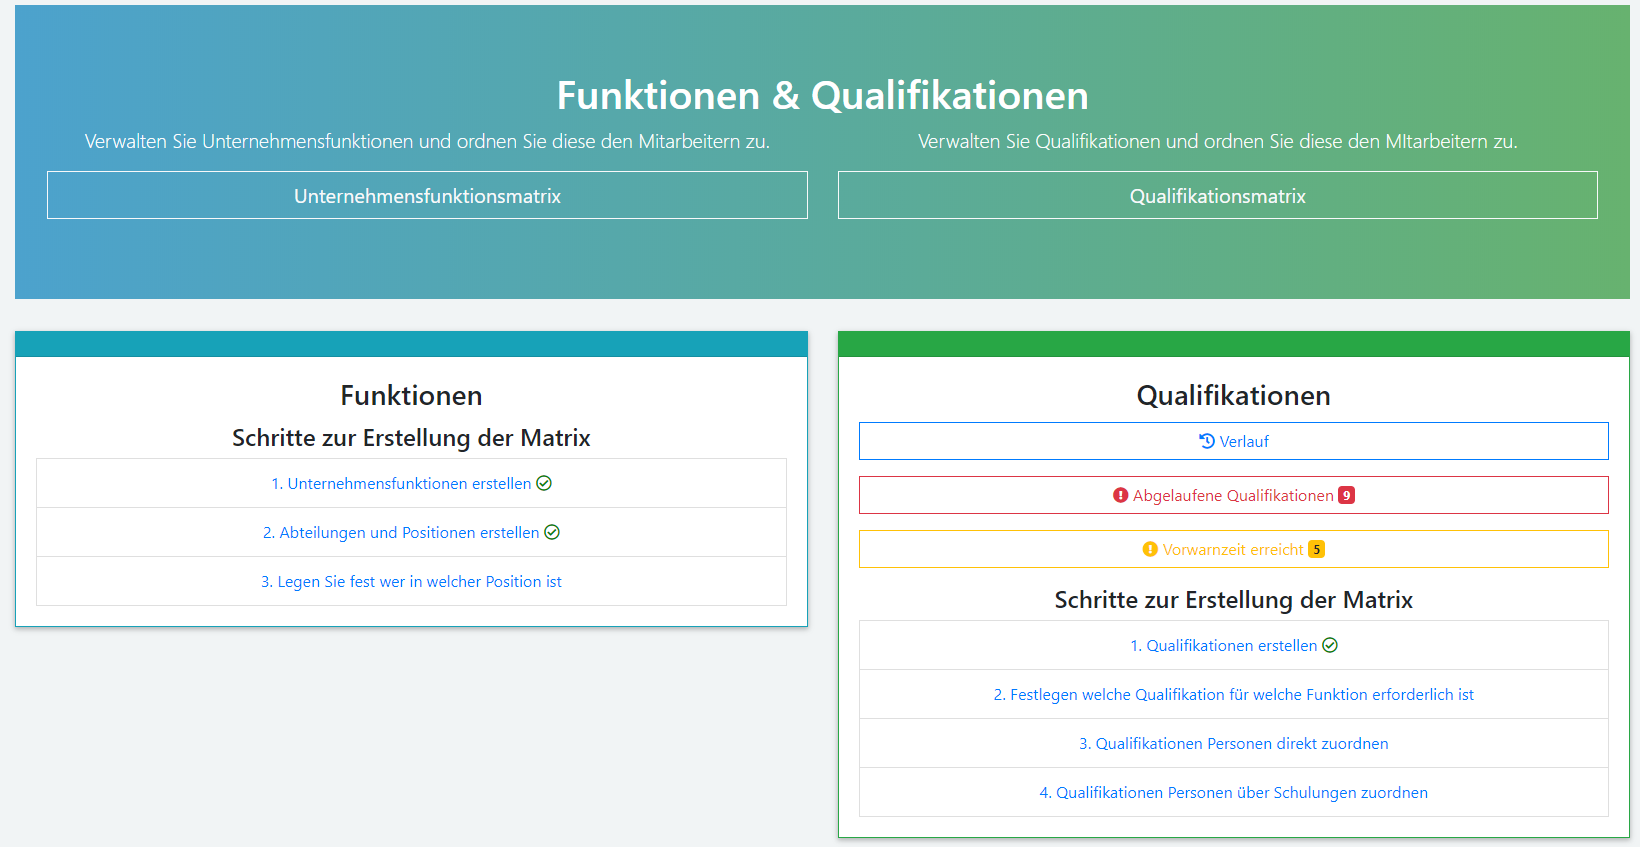 Qualifikationsmatrix